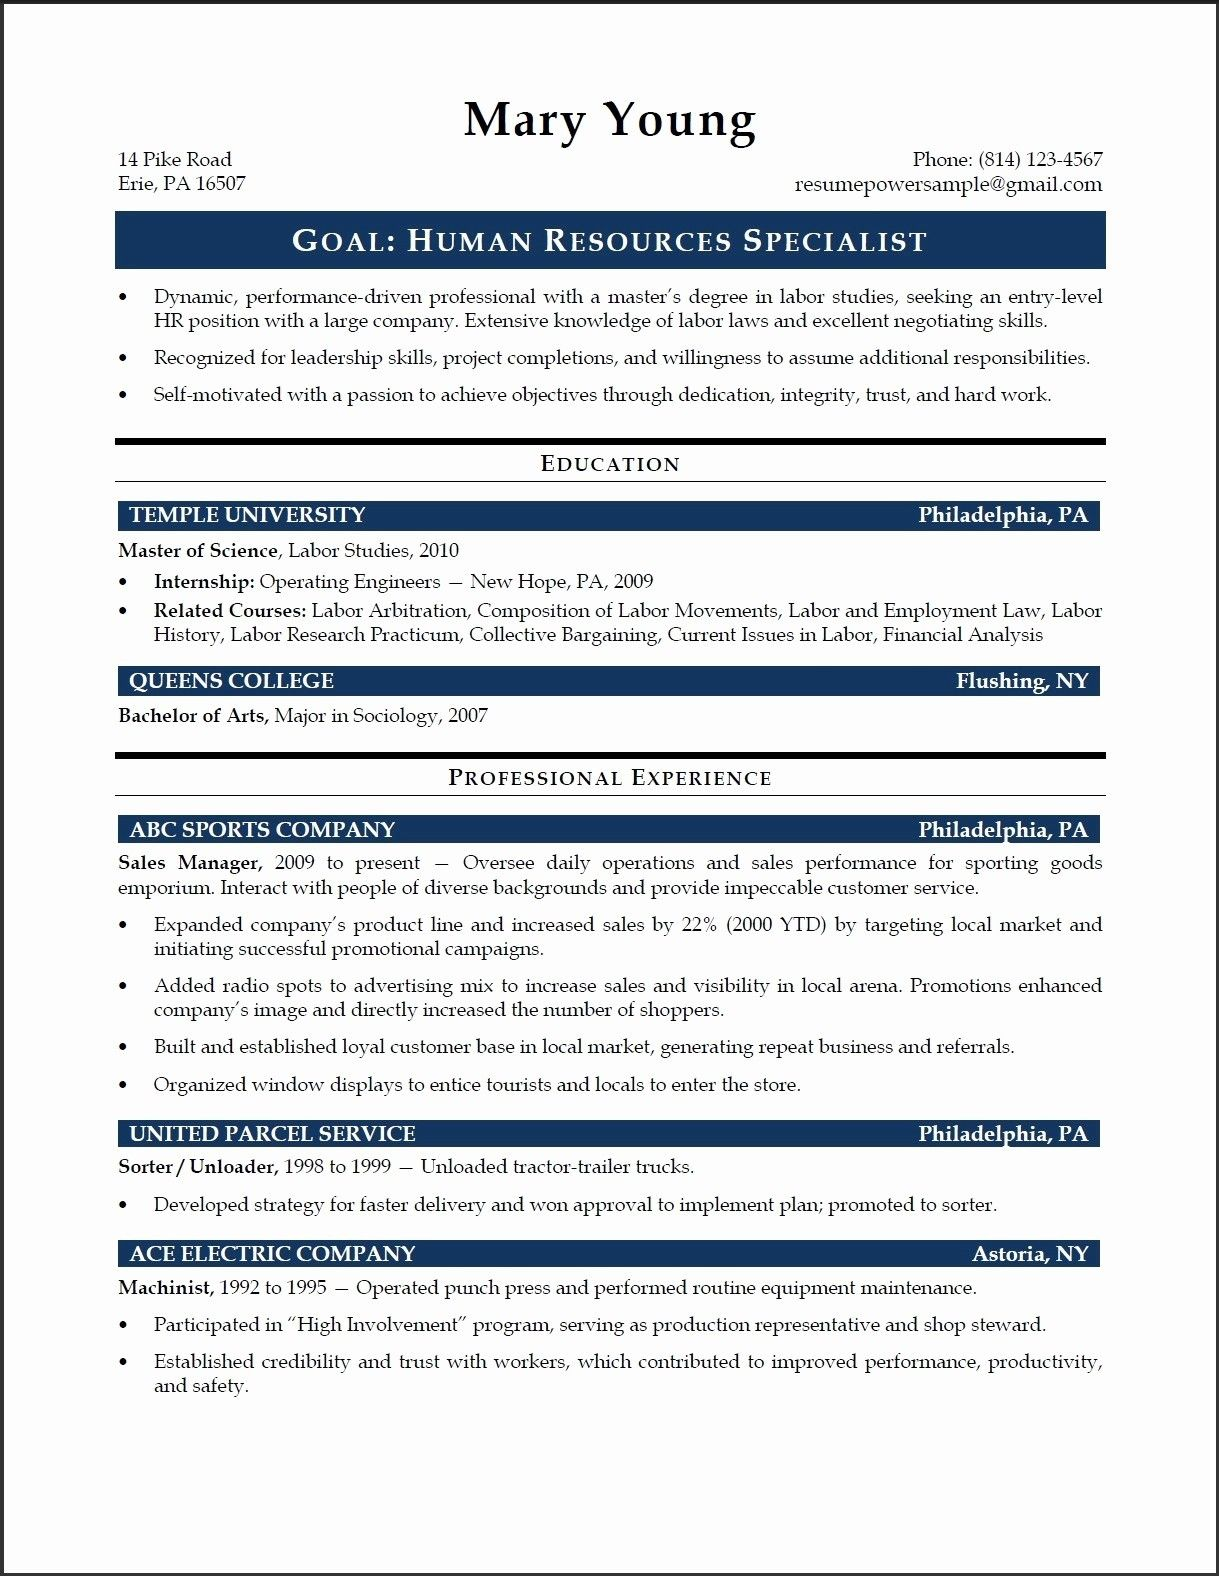 65 New Photos Of Human Resources Representative Resume Examples